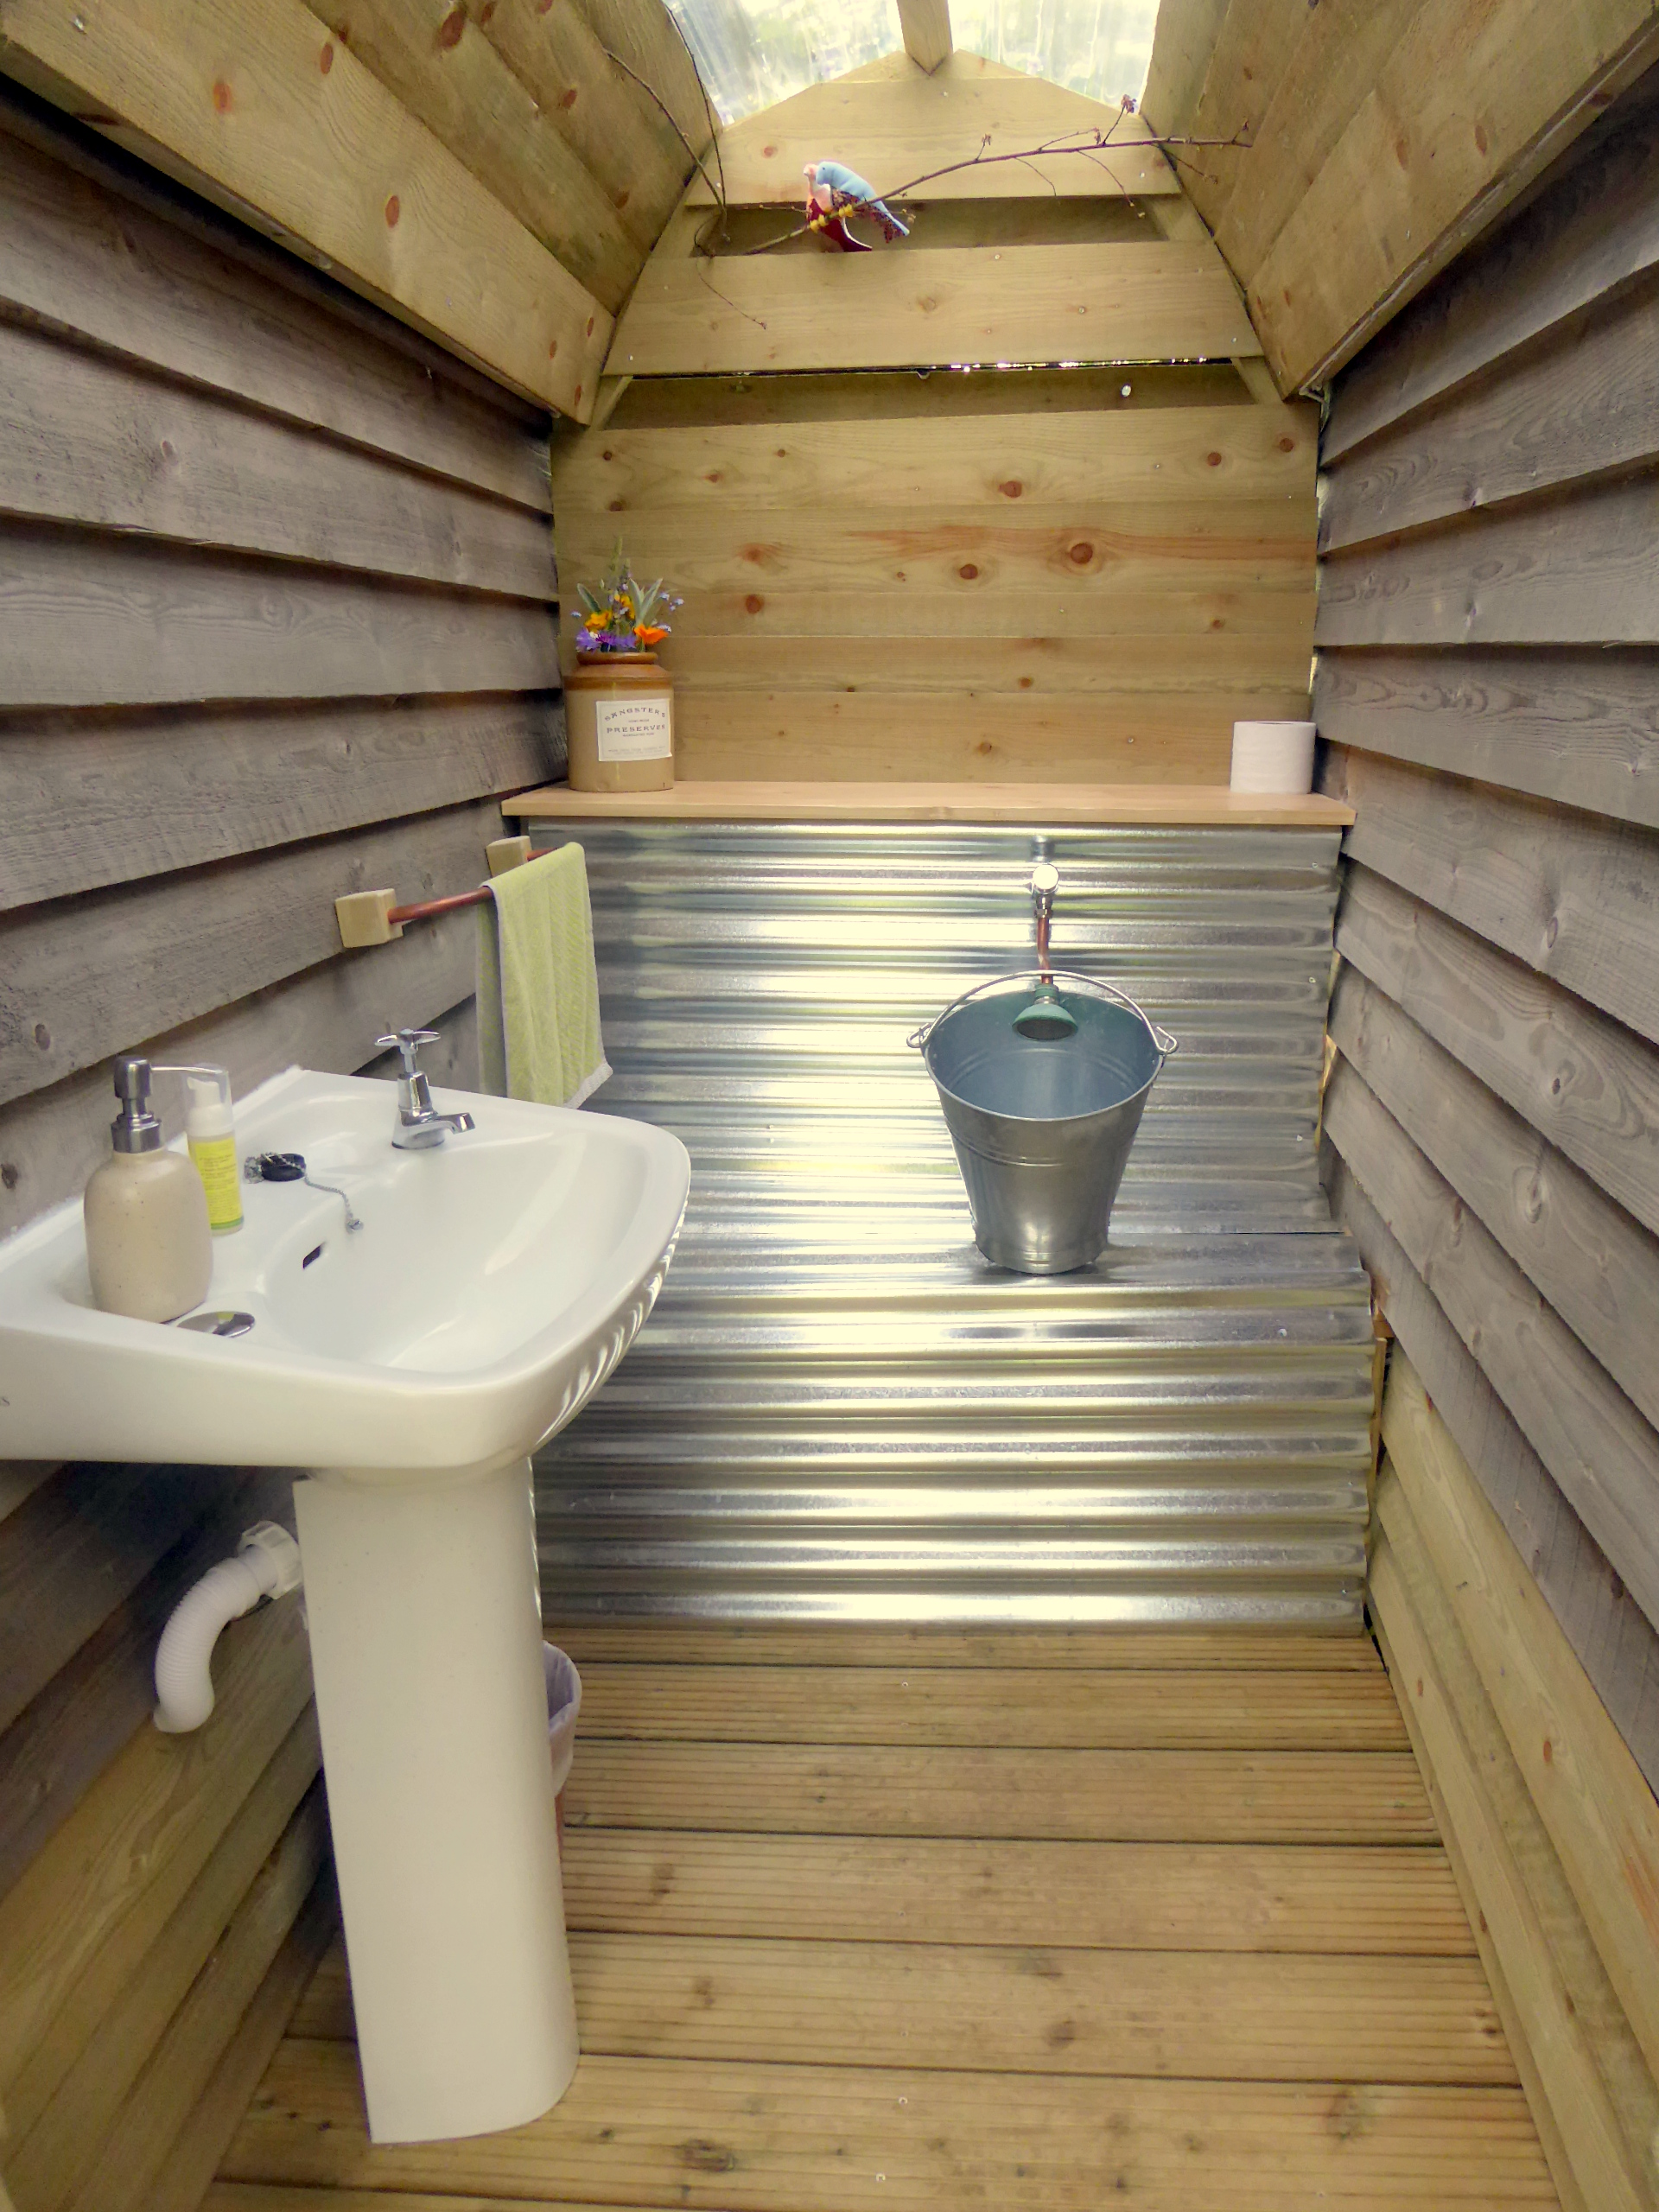 The 'wee hut' urinal